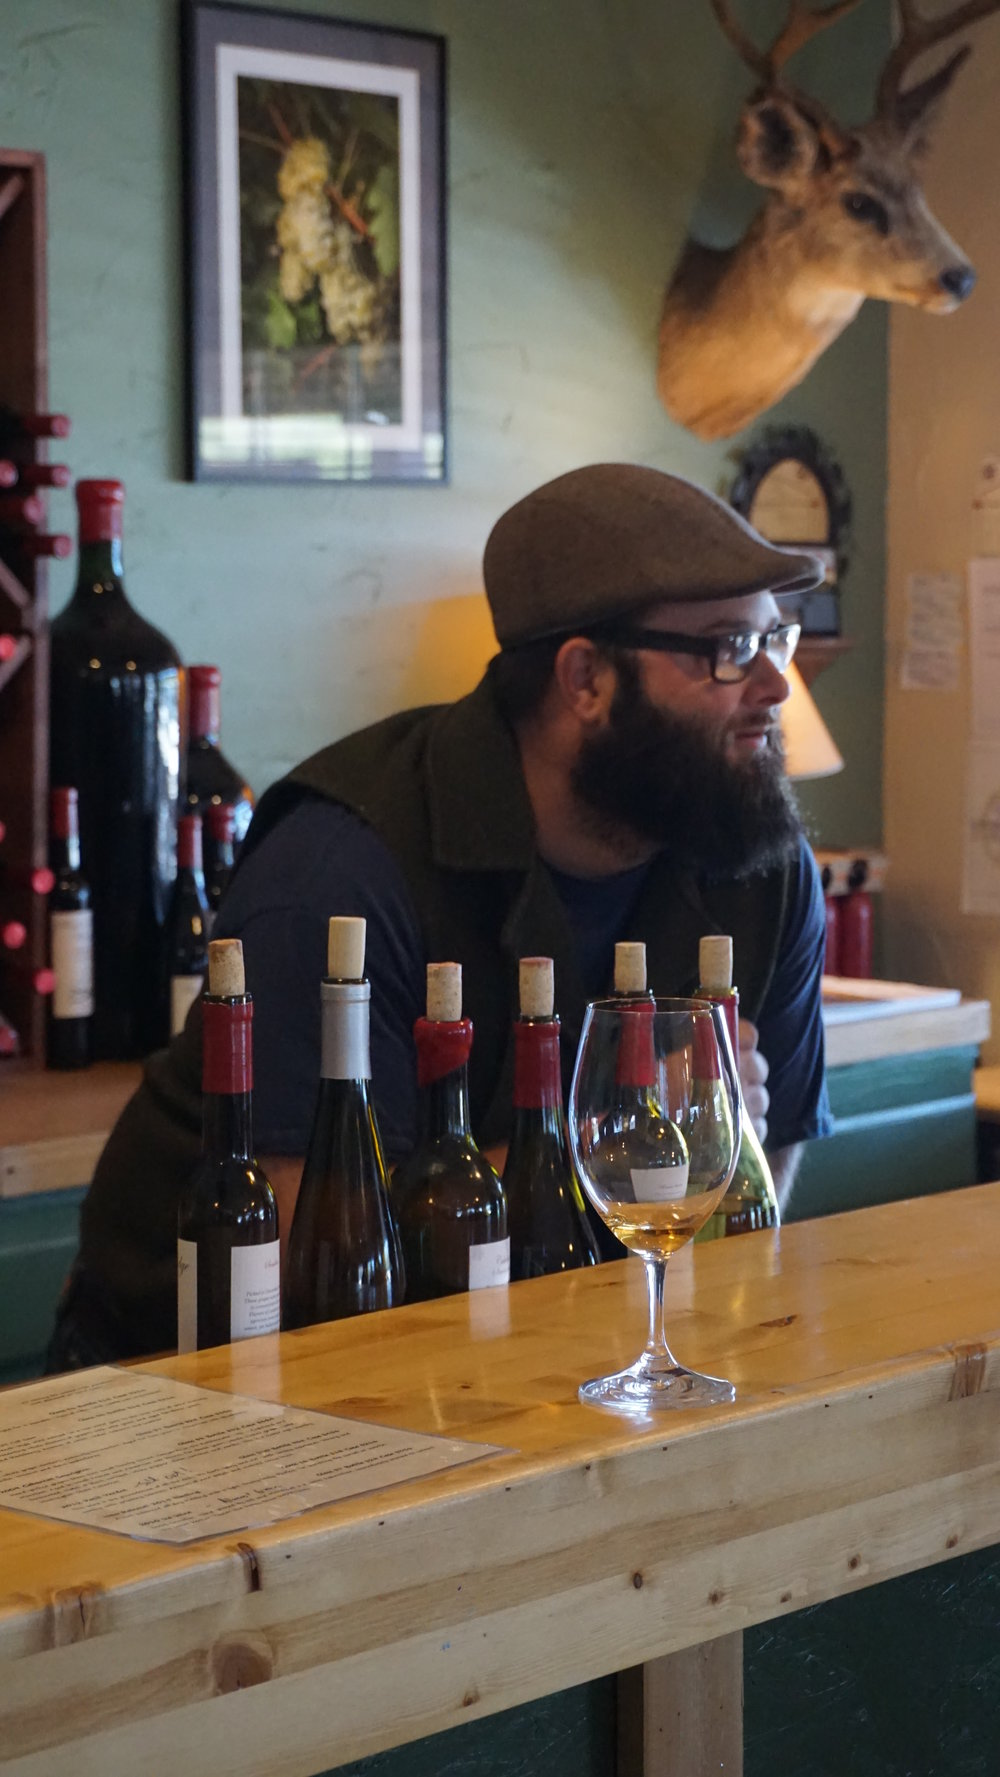 Bill Mechem fell in love with the wine world when he traveled to the Czech Republican and has been crafting his European-influenced wines since 2006. Dan Eierdam